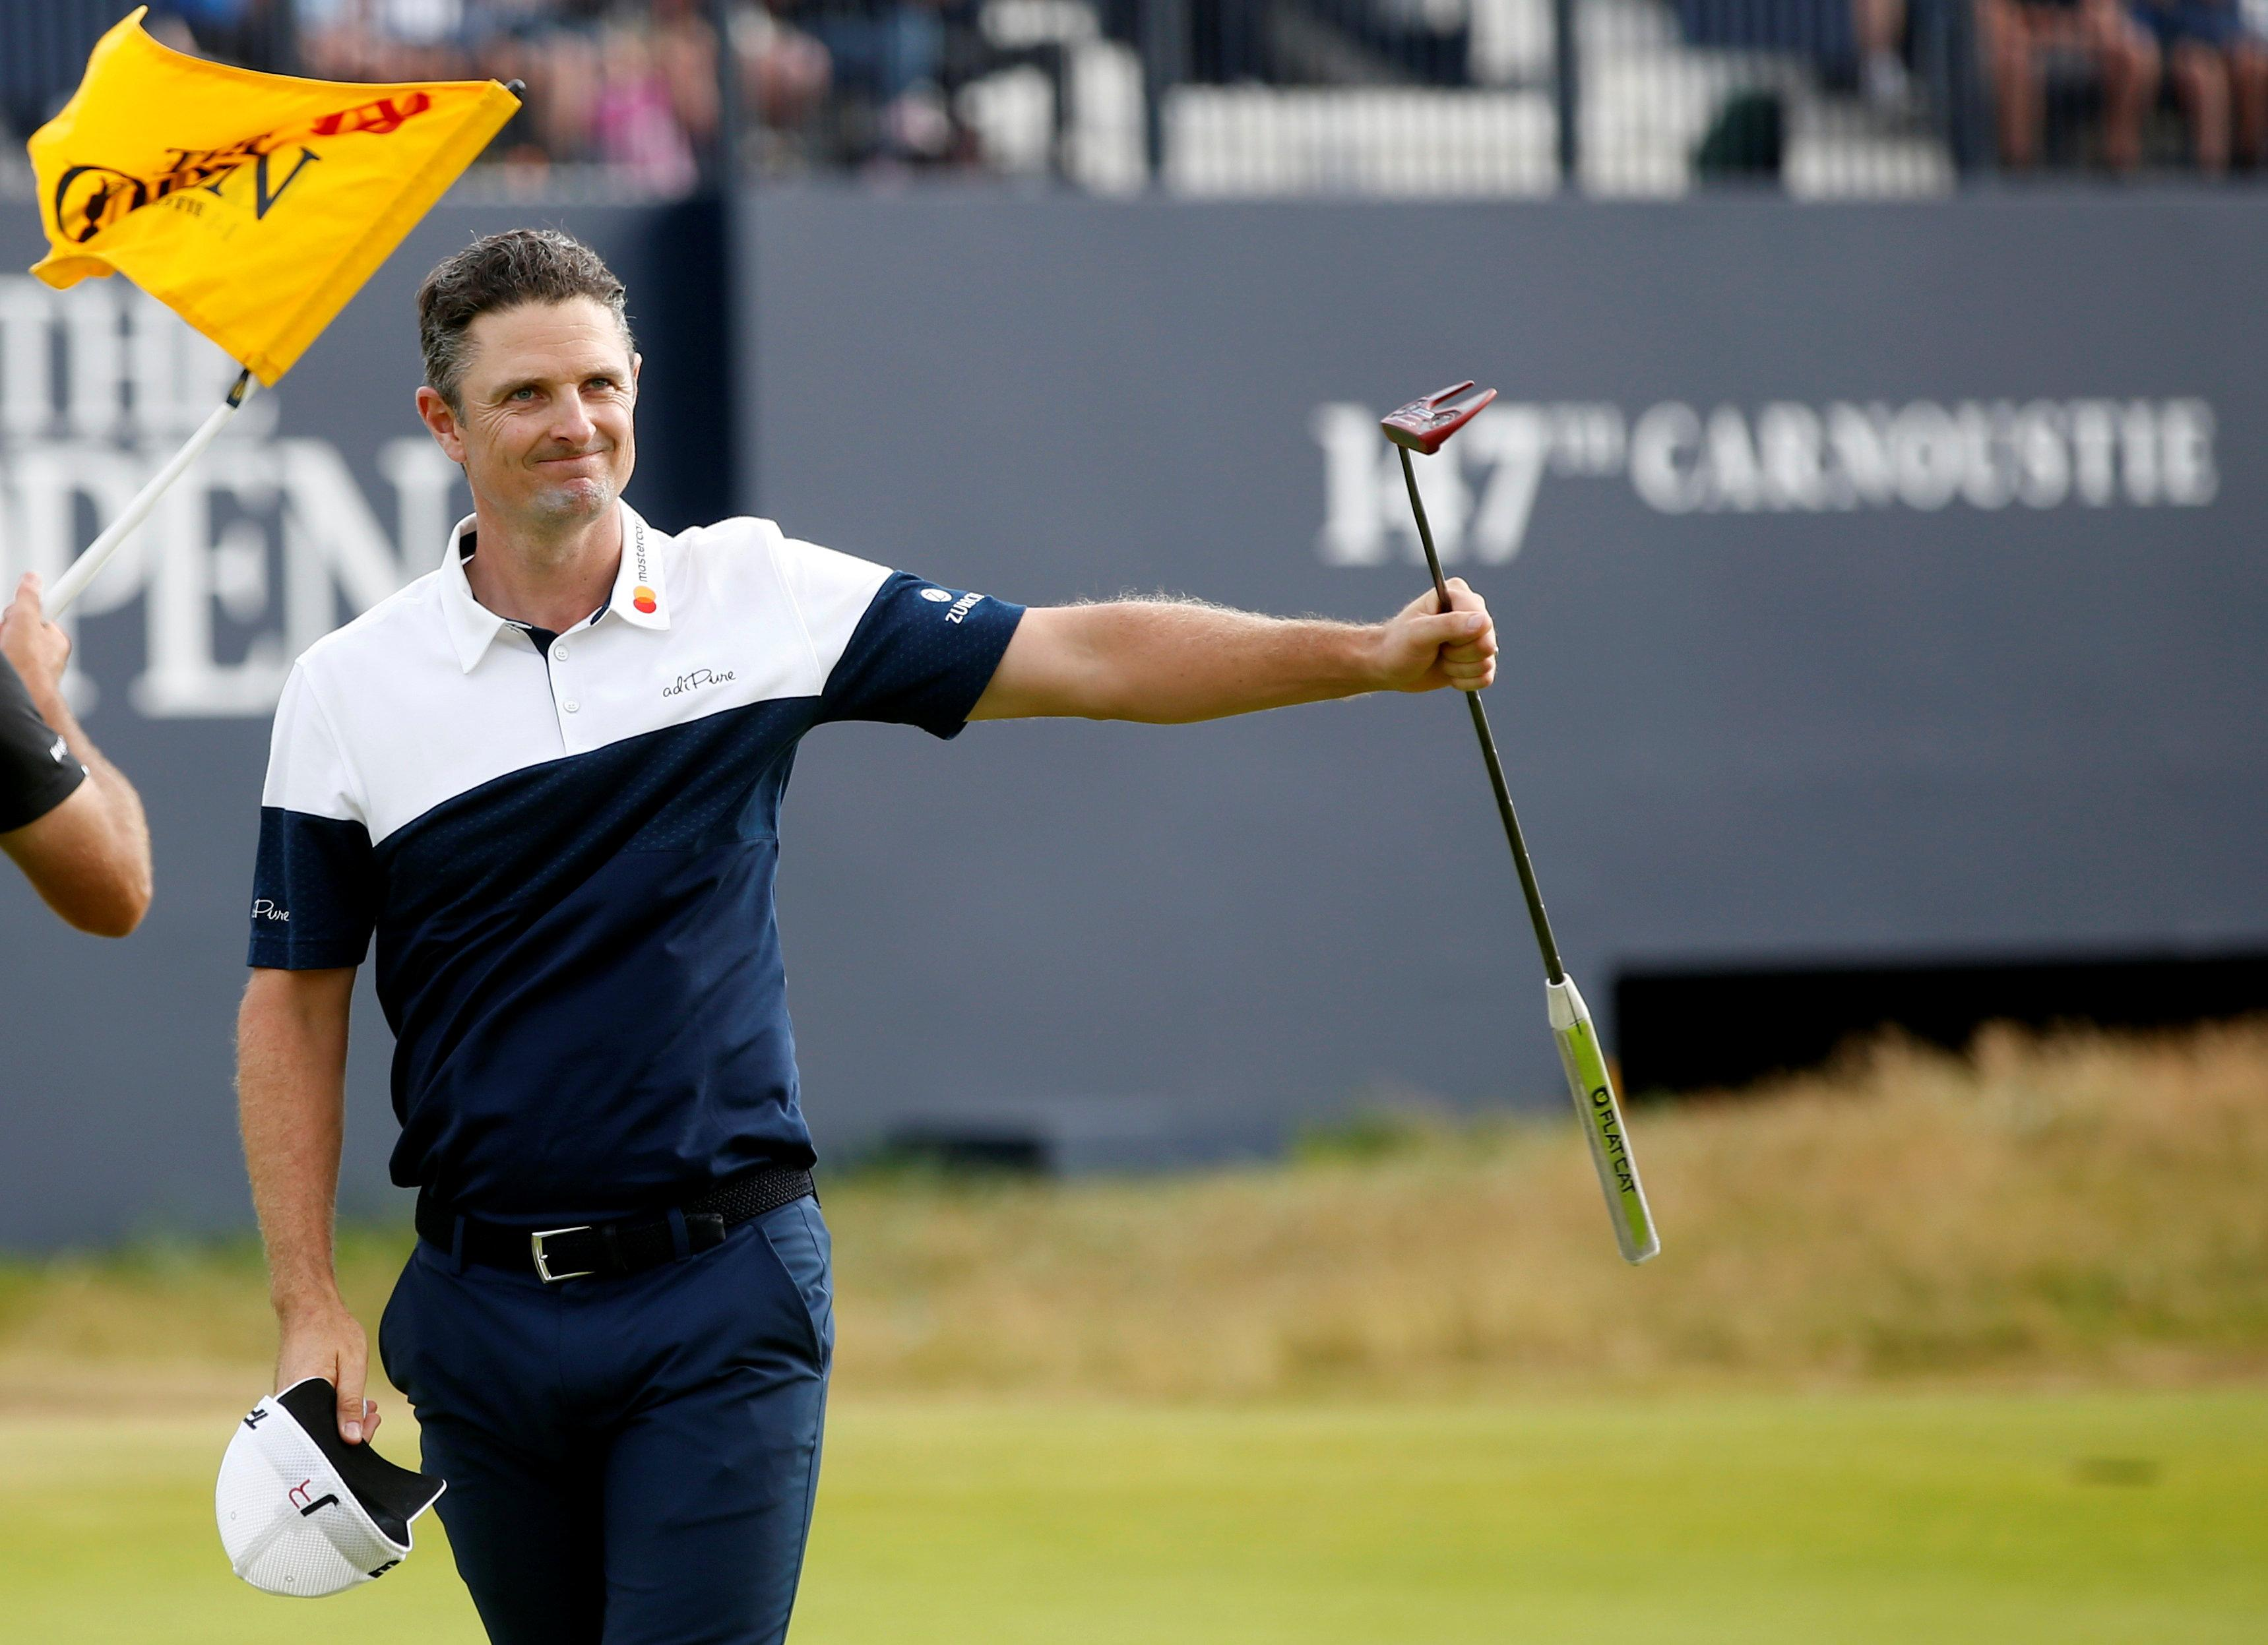 Justin Rose birdied Carnoustie's brutal 18th for the fourth time to cap off an amazing weekend move